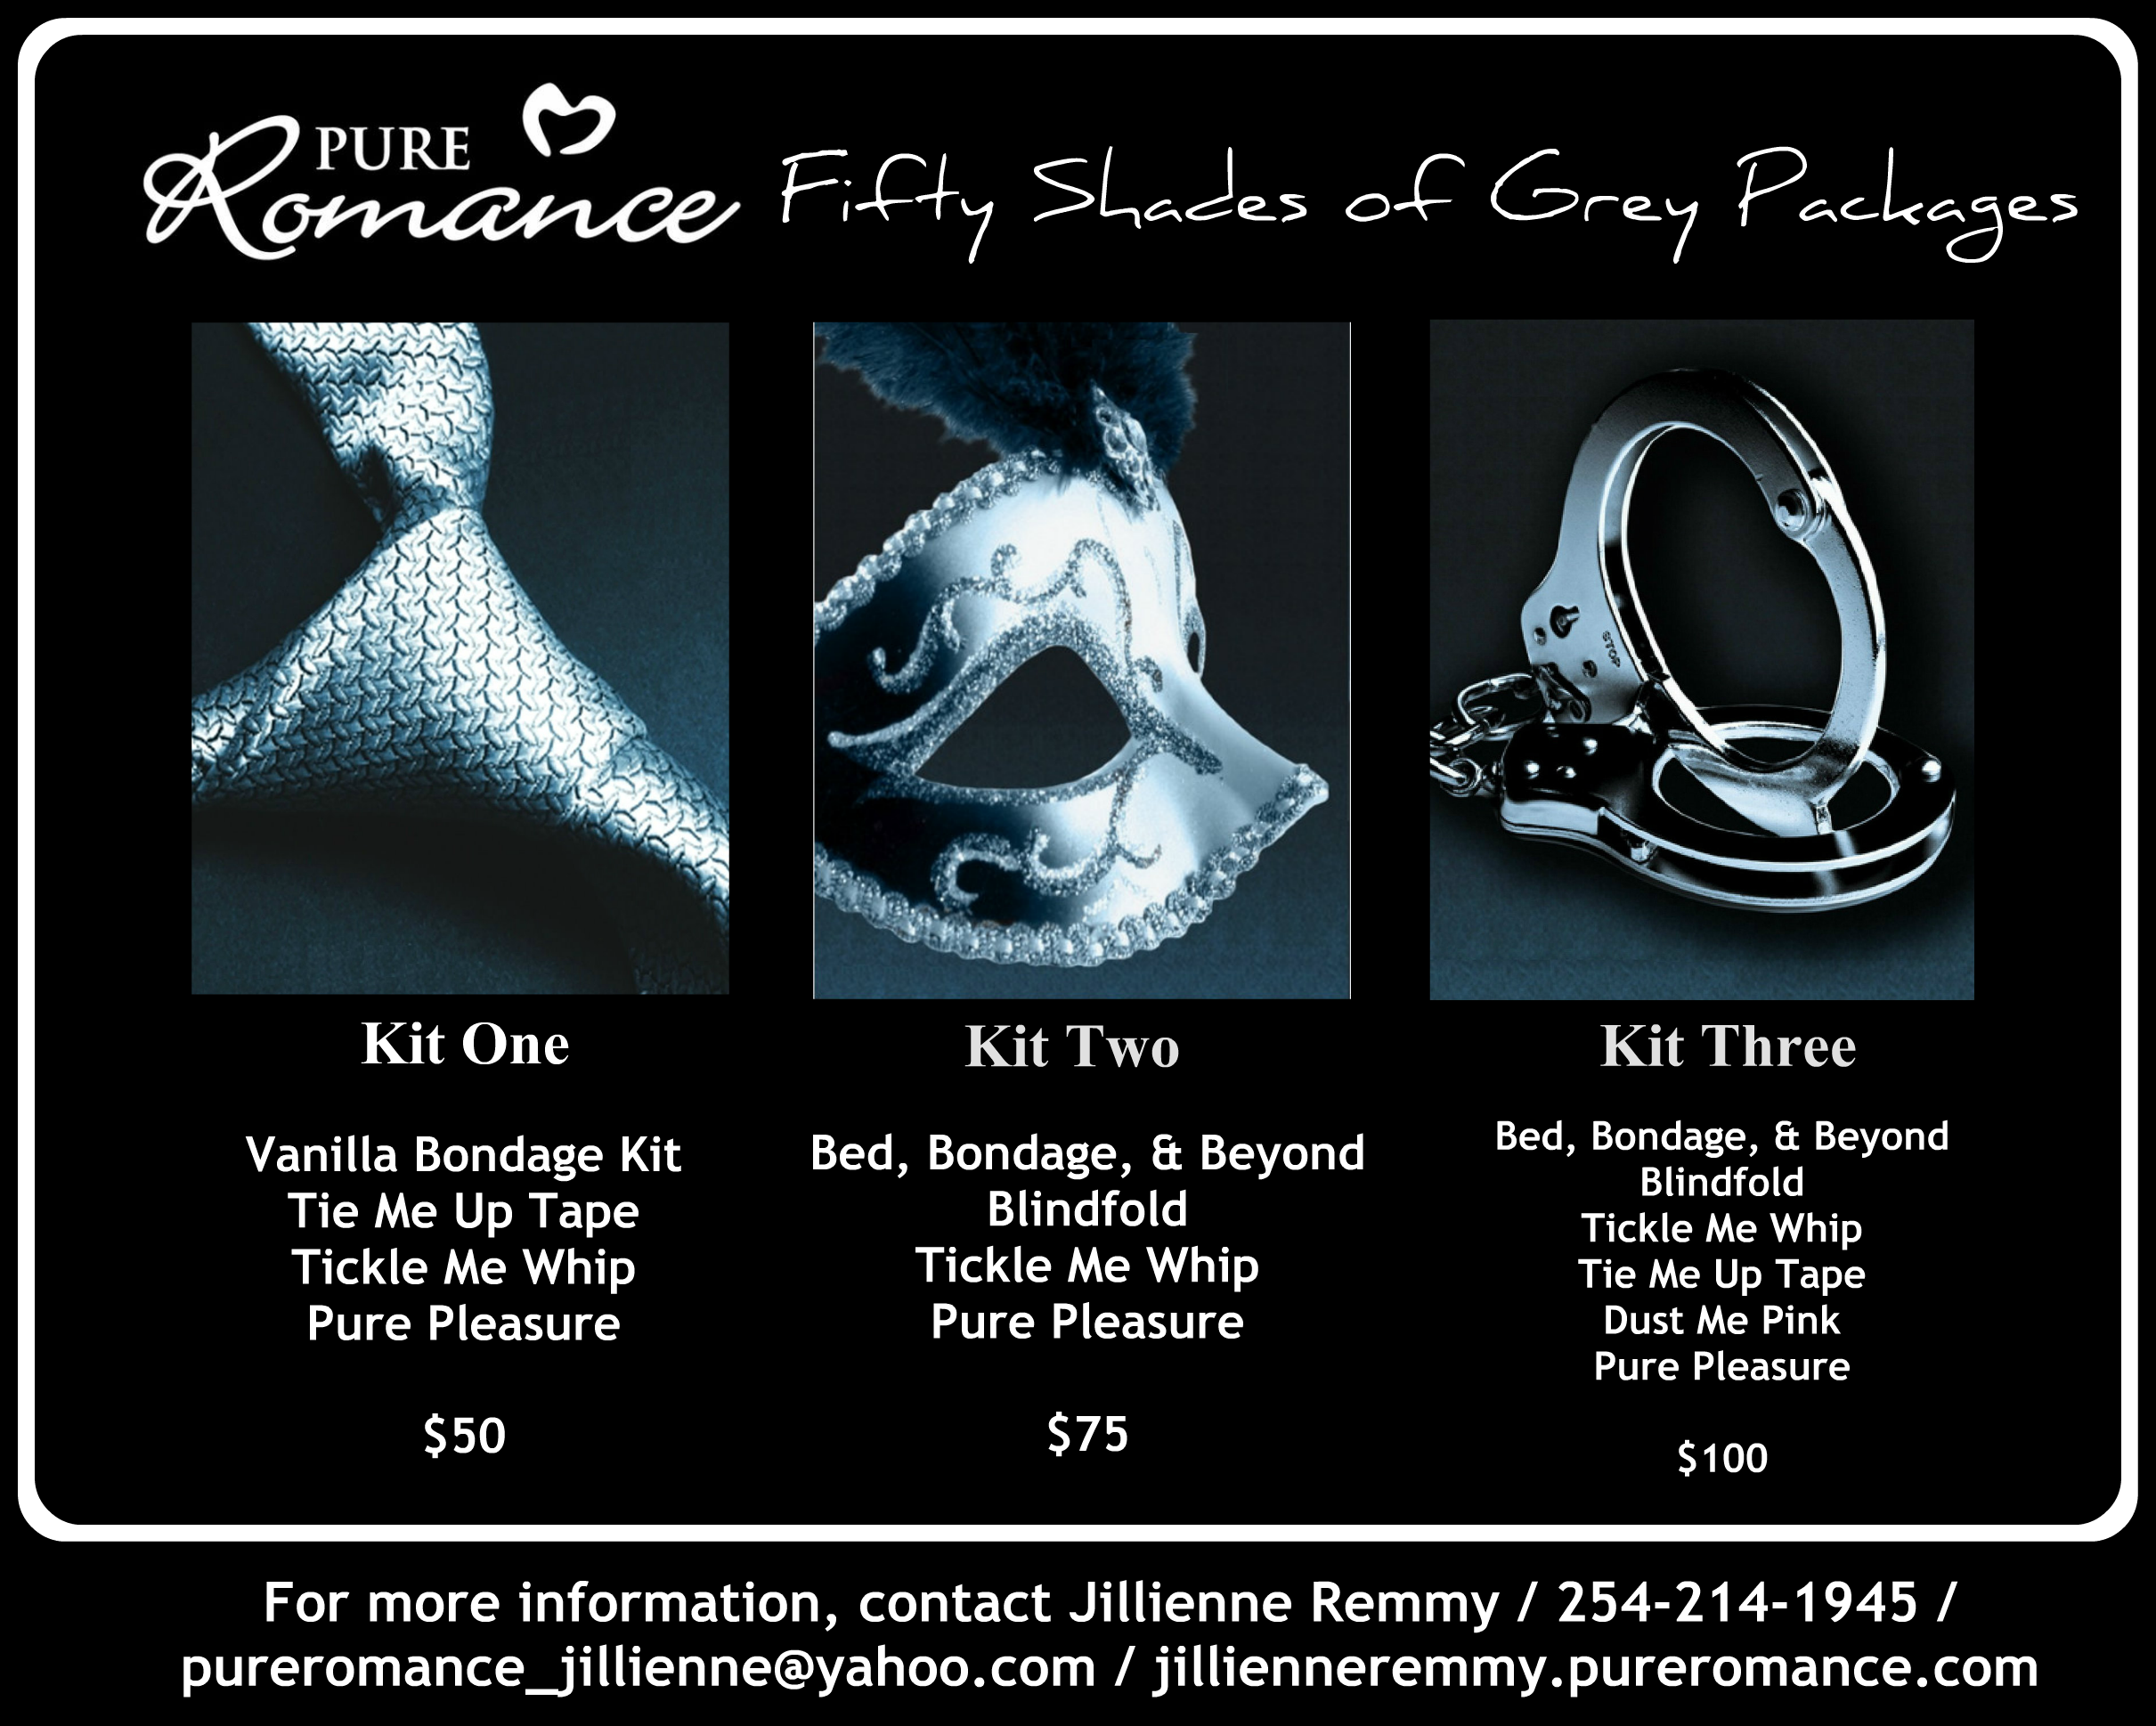 special fifty shades of grey pure r ce kits you could get 3 special fifty shades of grey pure r ce kits you could get one